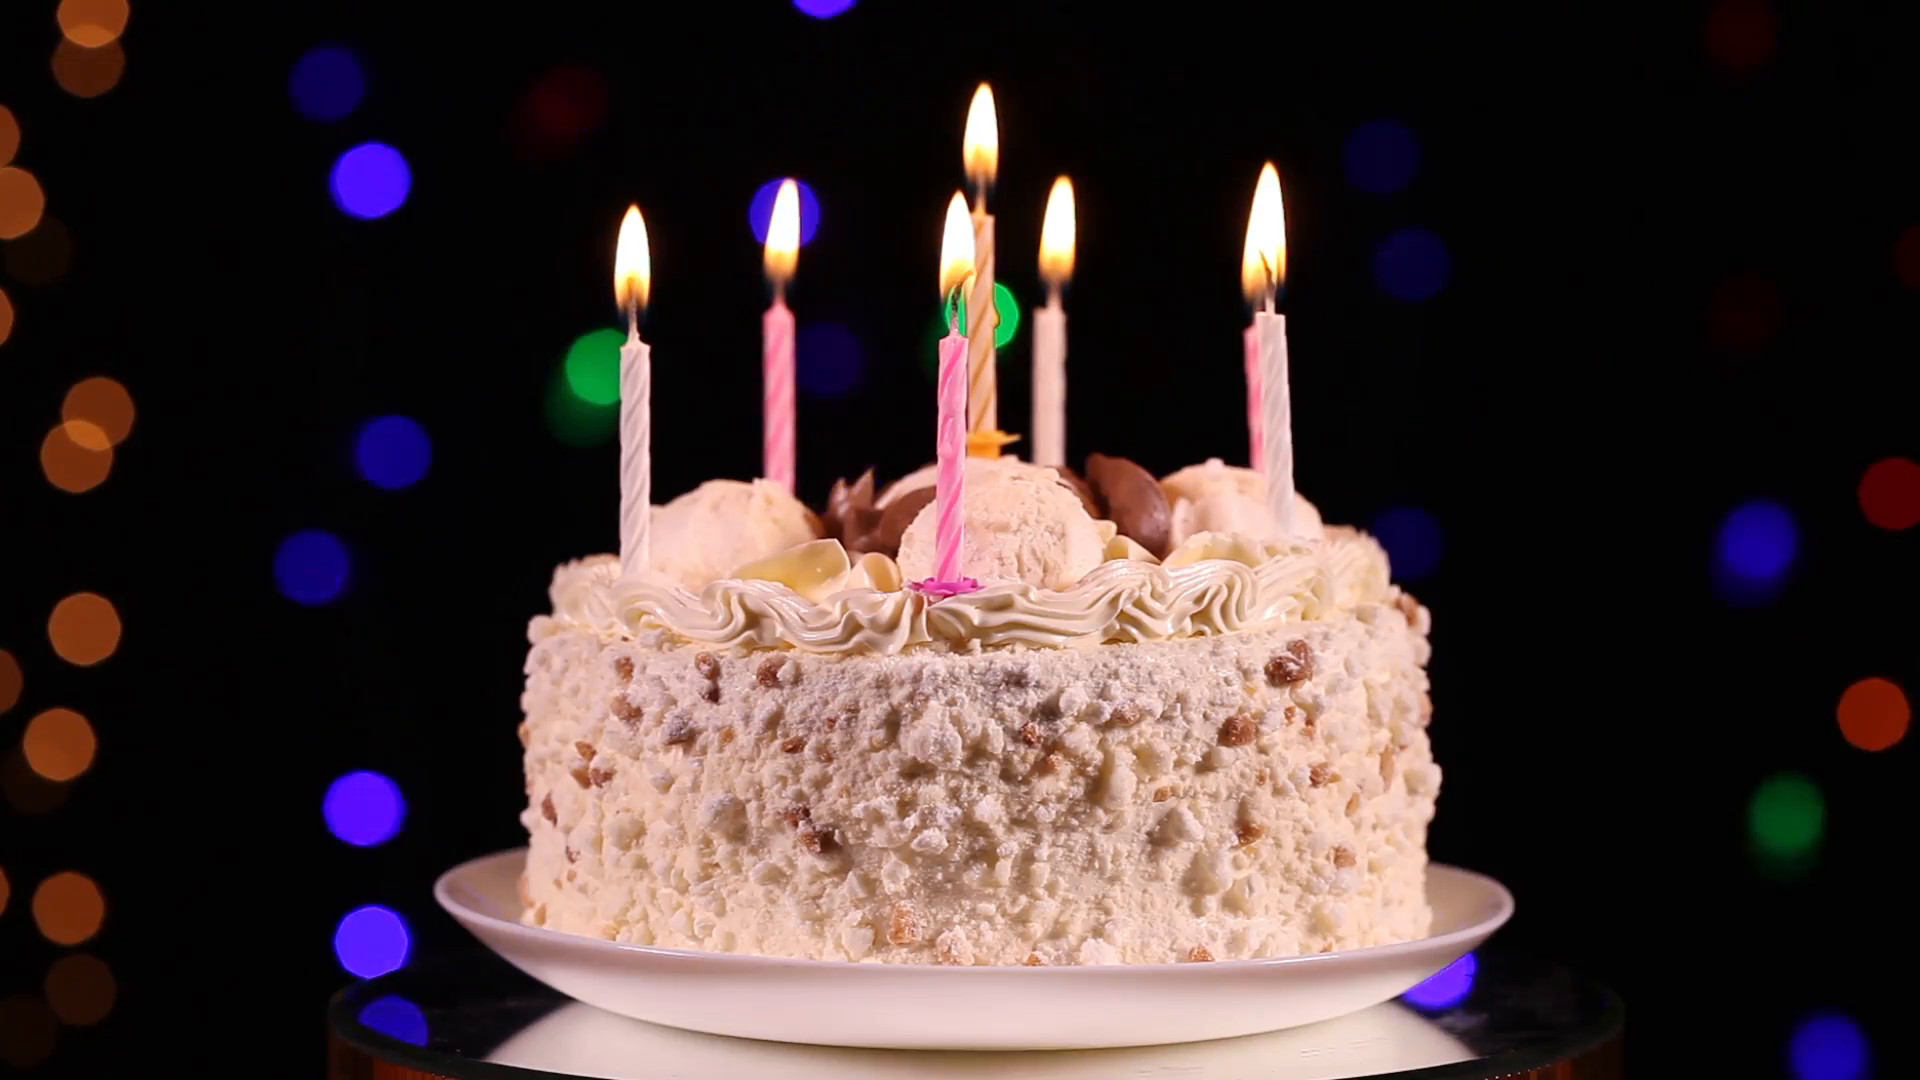 Best ideas about Happy Birthday Cake With Candles . Save or Pin Happy Birthday cake with burning candles in front of black Now.